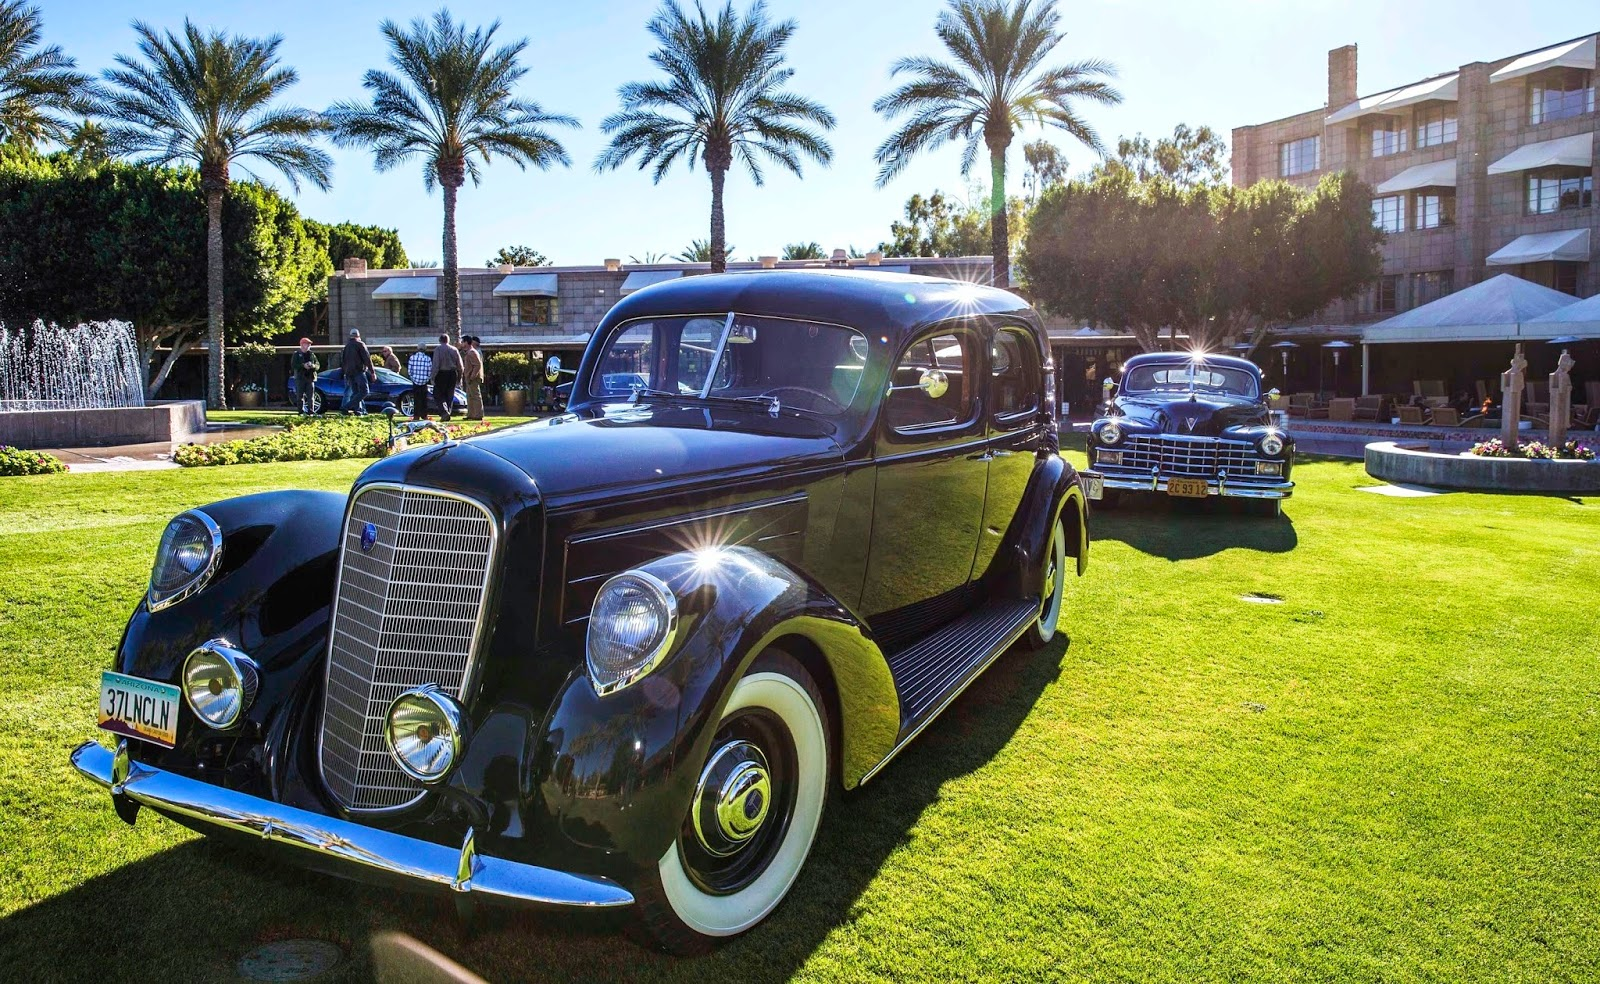 1937 Lincoln followed by 1947 Cadillac at the Biltmore during recent 'dry run' site testing. (Michael Tobian photo)